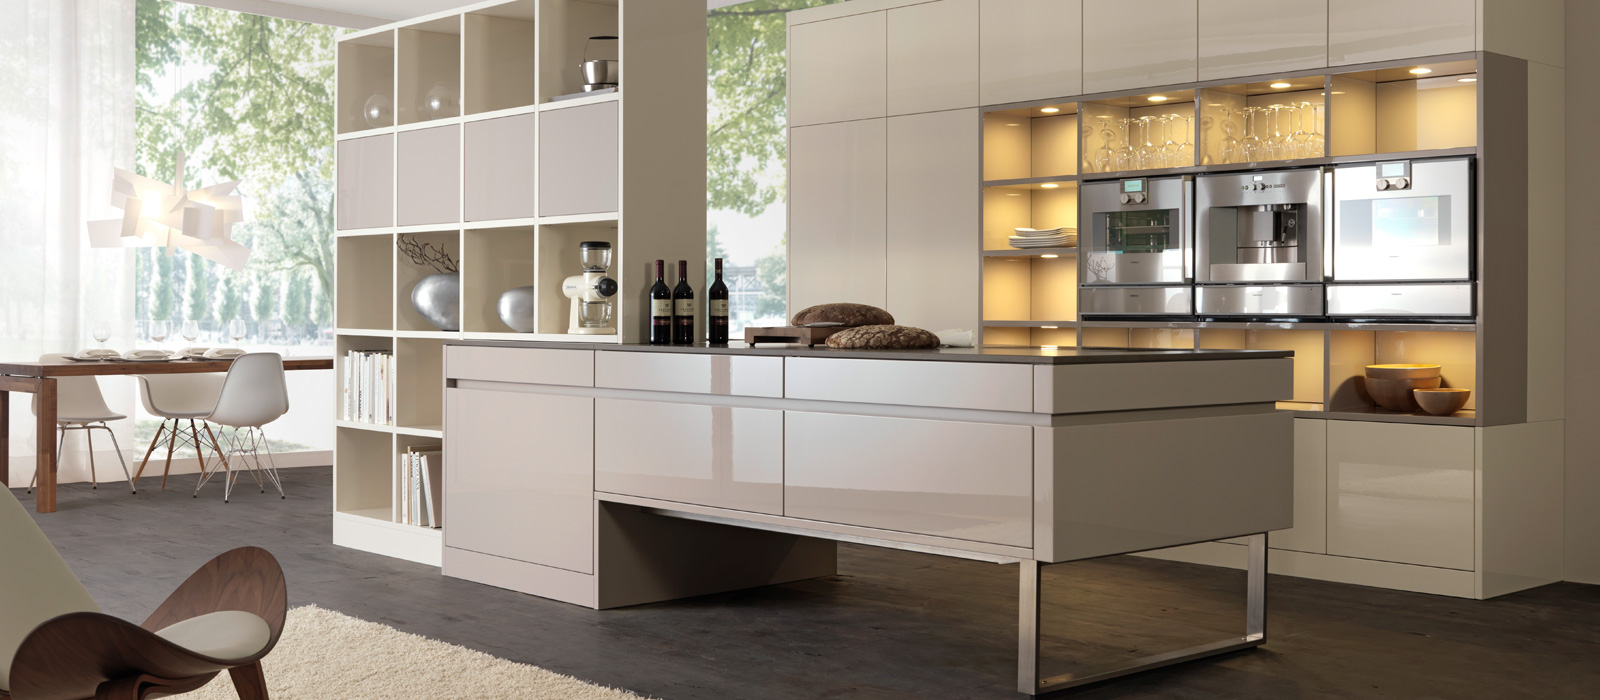 marvelous Leicht Kitchens Prices #1: Leicht Kitchen Cabinets Prices Kitchen